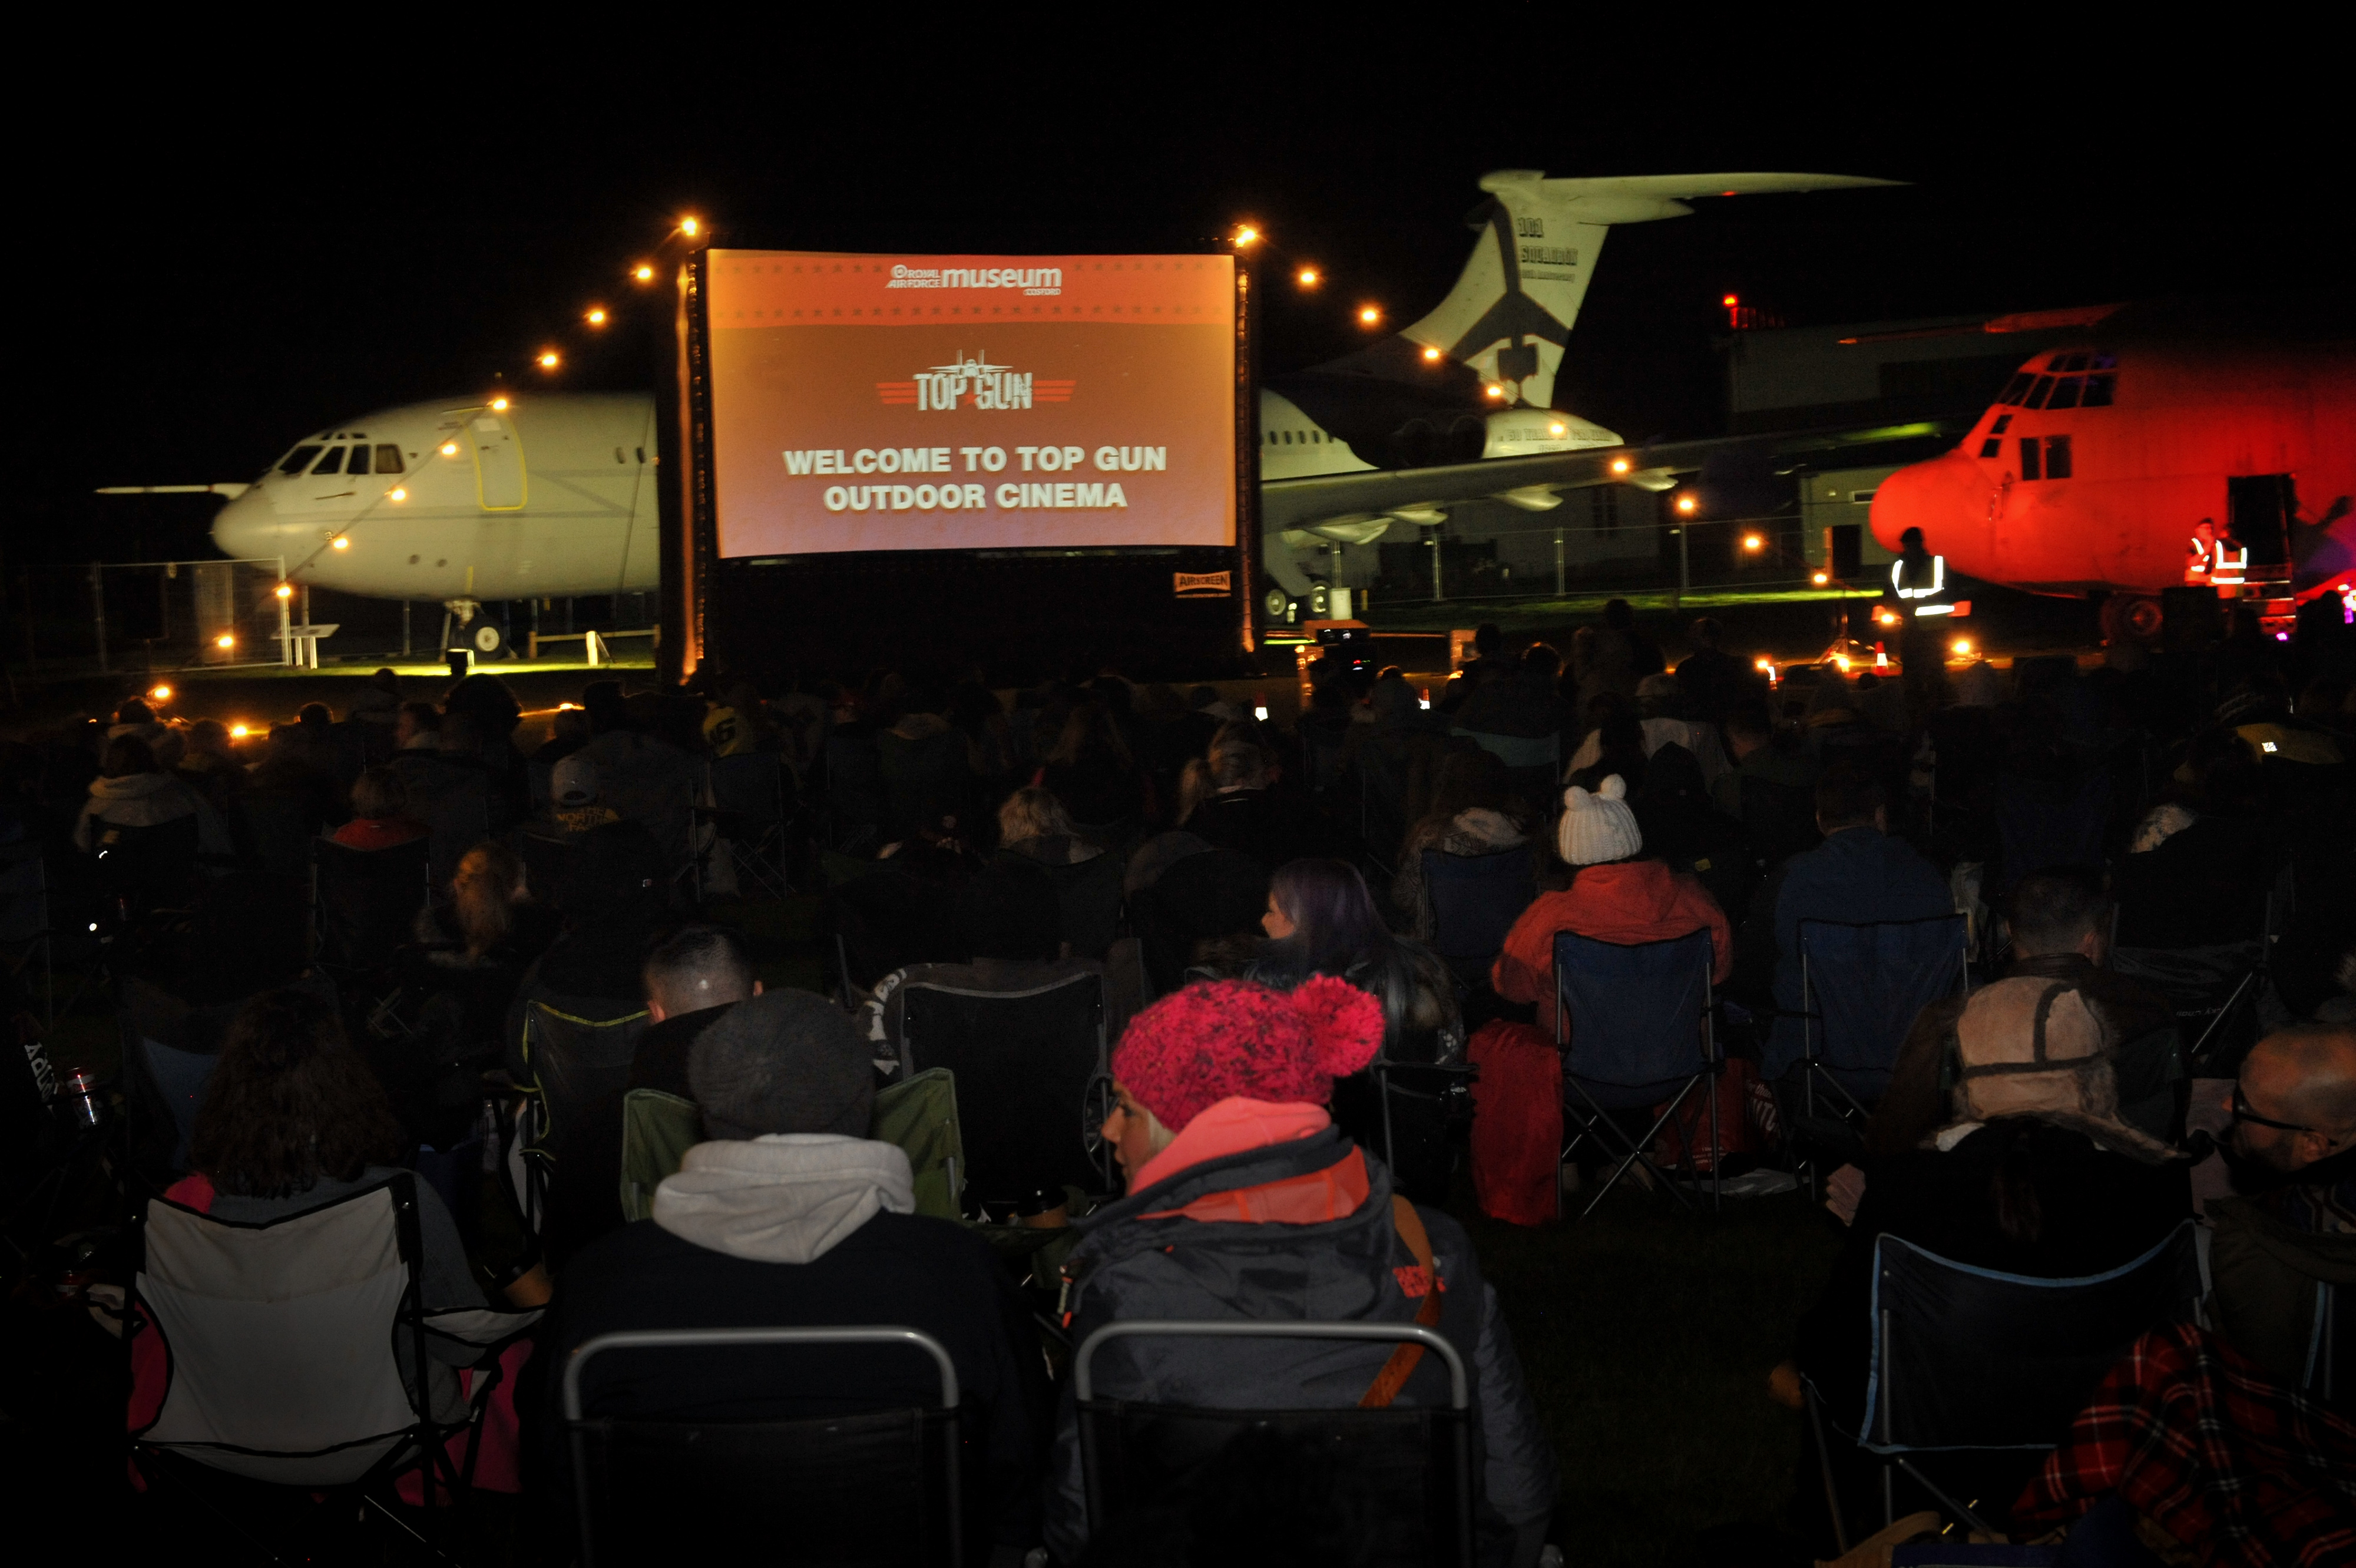 Top Gun - Outdoor Cinema Screening